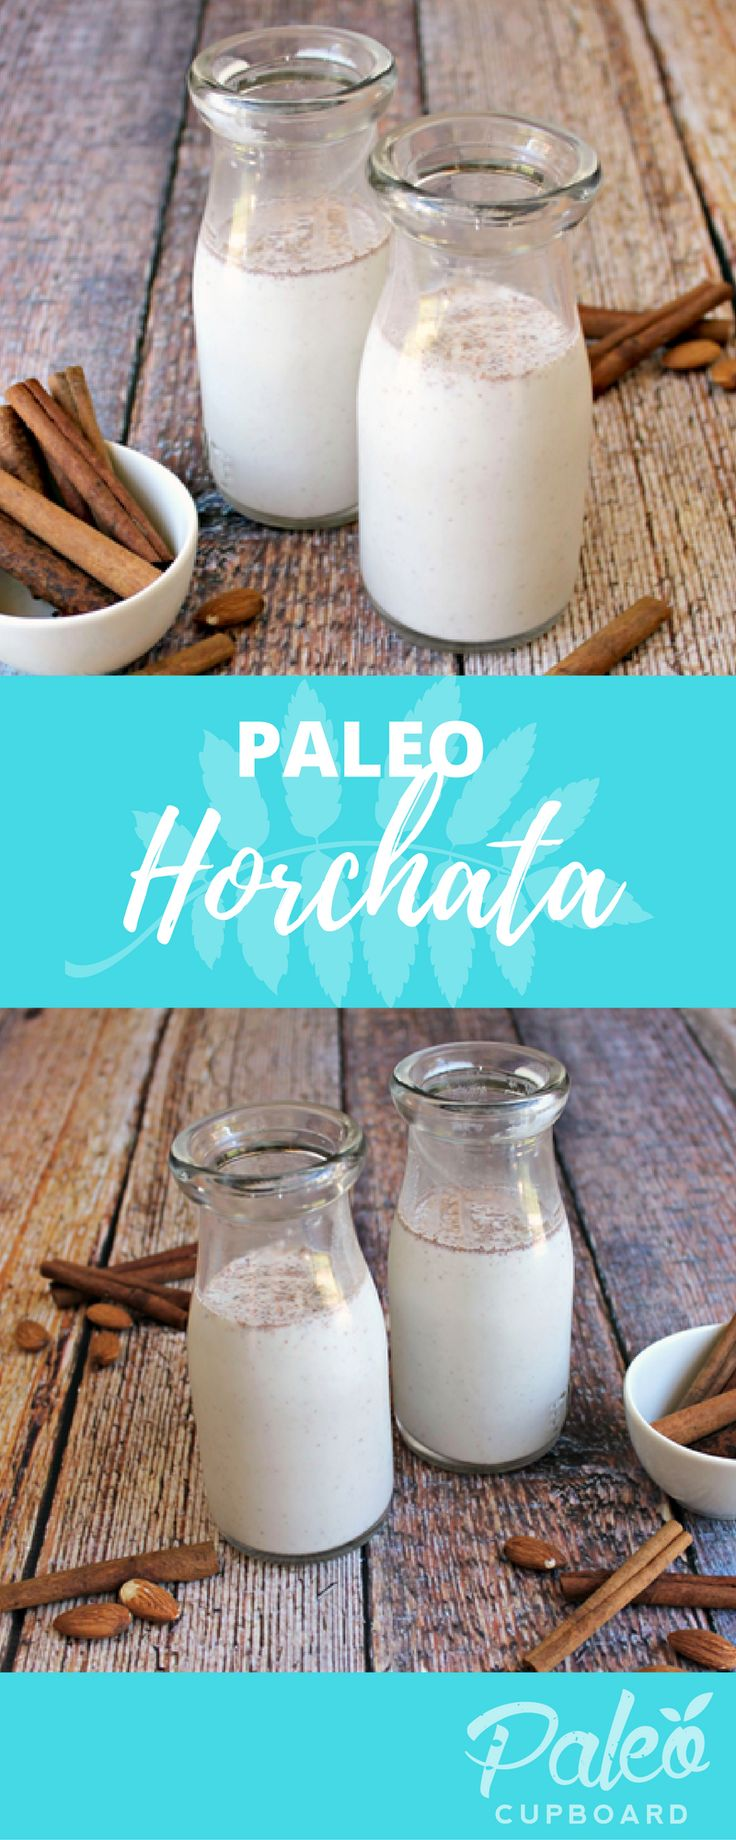 Paleo Horchata recipe - easy and refreshing drink that everyone will love!